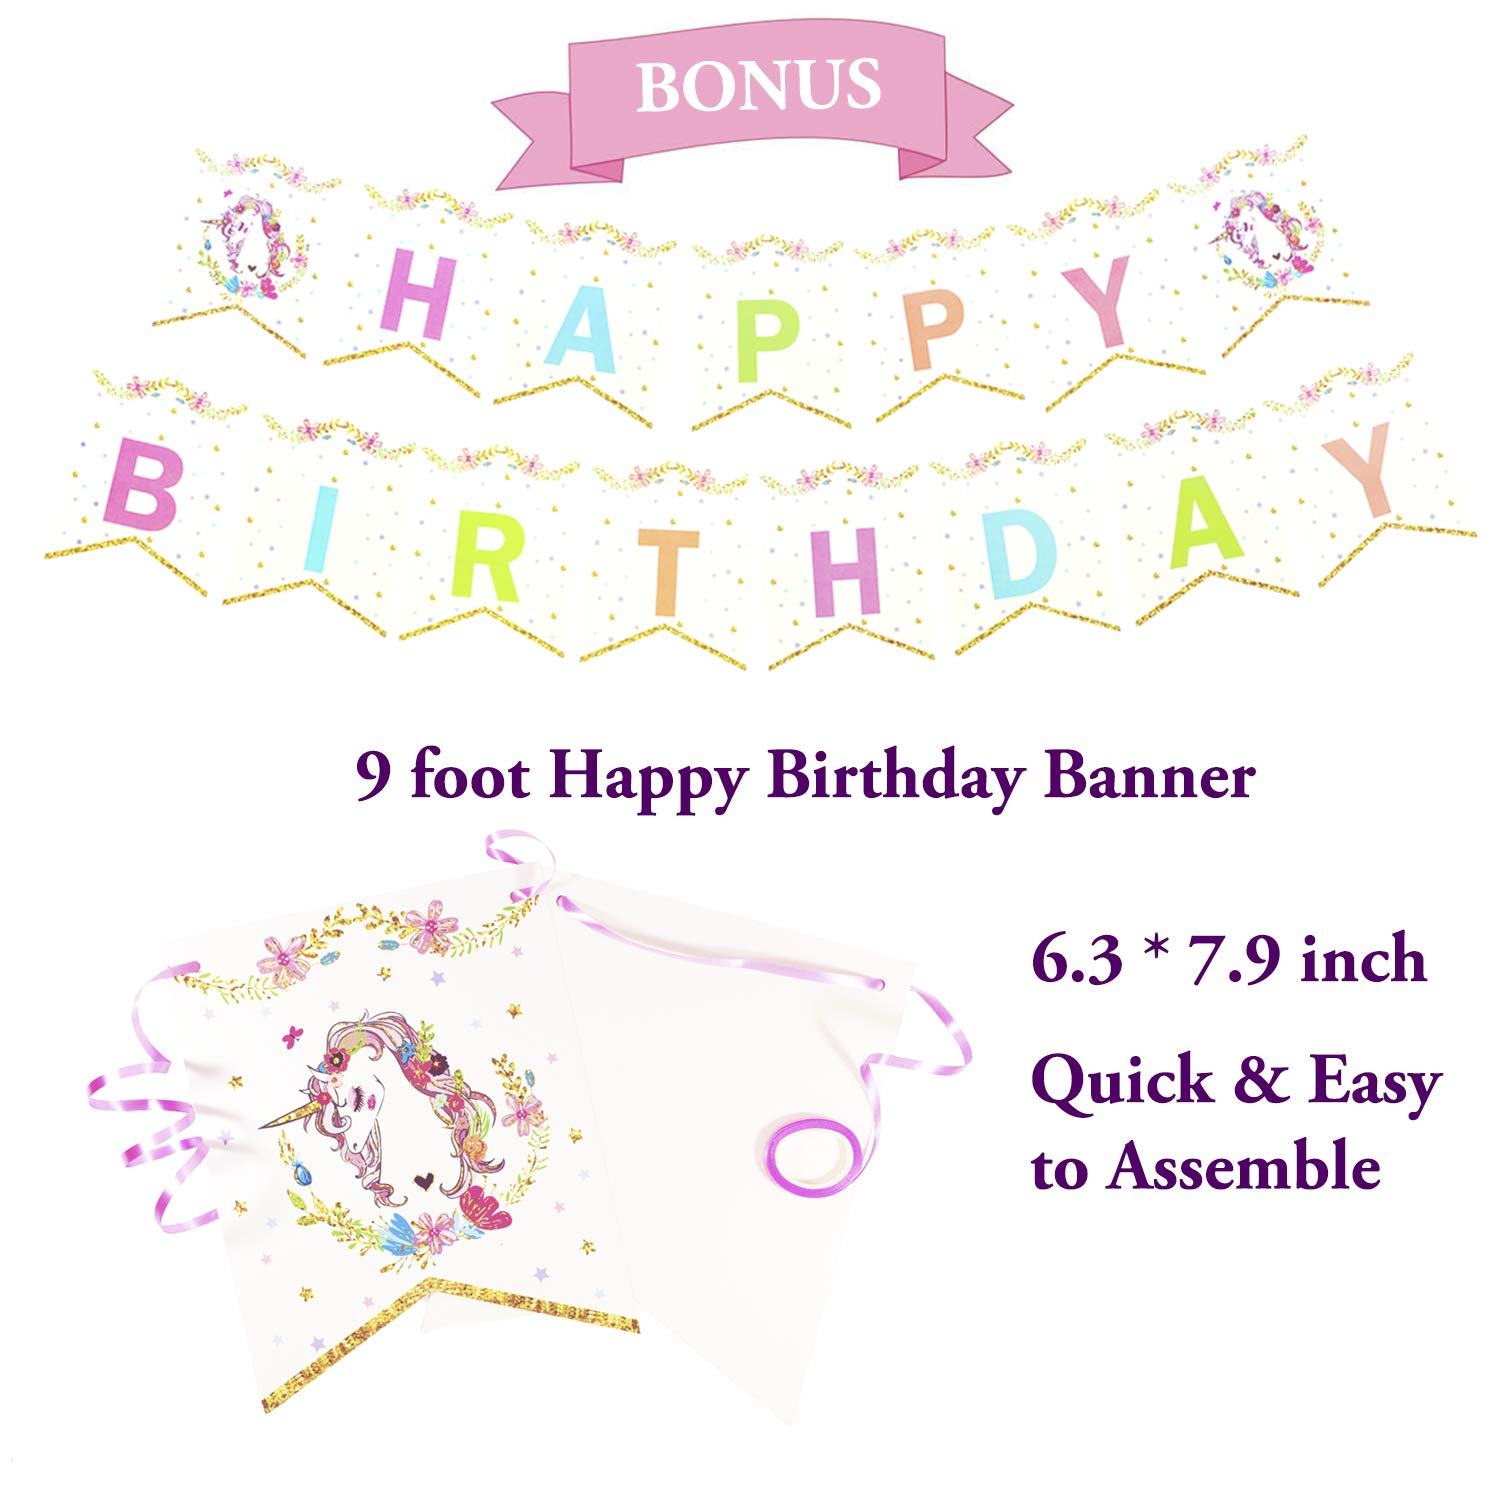 Gold Orongo Beautiful Unicorn Happy Birthday Party Supplies Pack for Girls -Serves 16 Complete Disposable Set of Decorations Item 130 Decorations Item kit Magical Day for Your Little Princess